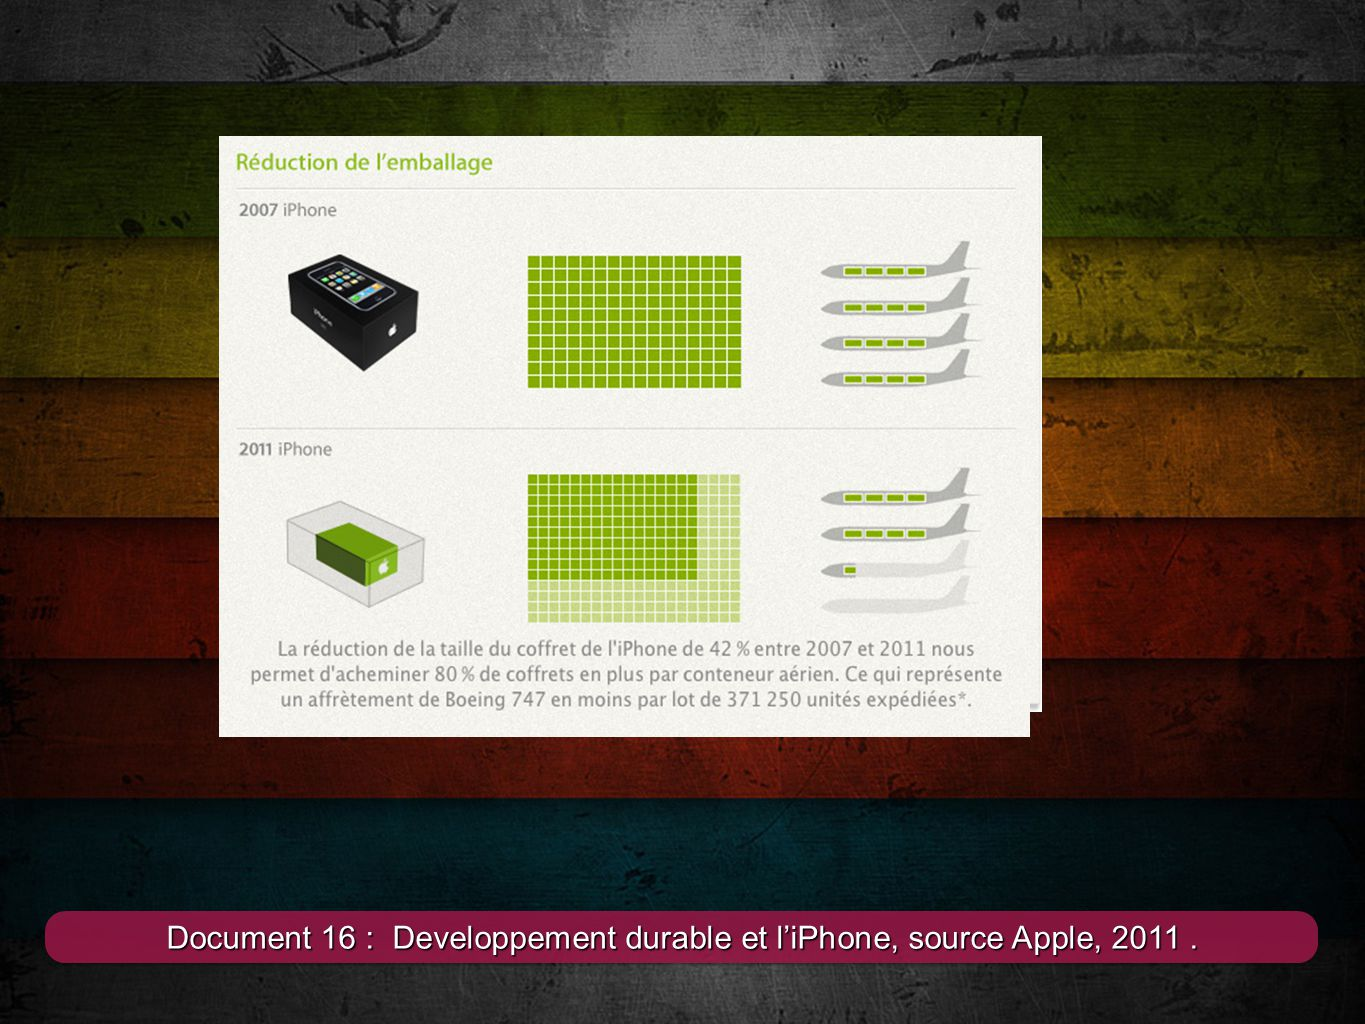 Document 16 : Developpement durable et l'iPhone, source Apple, 2011 .